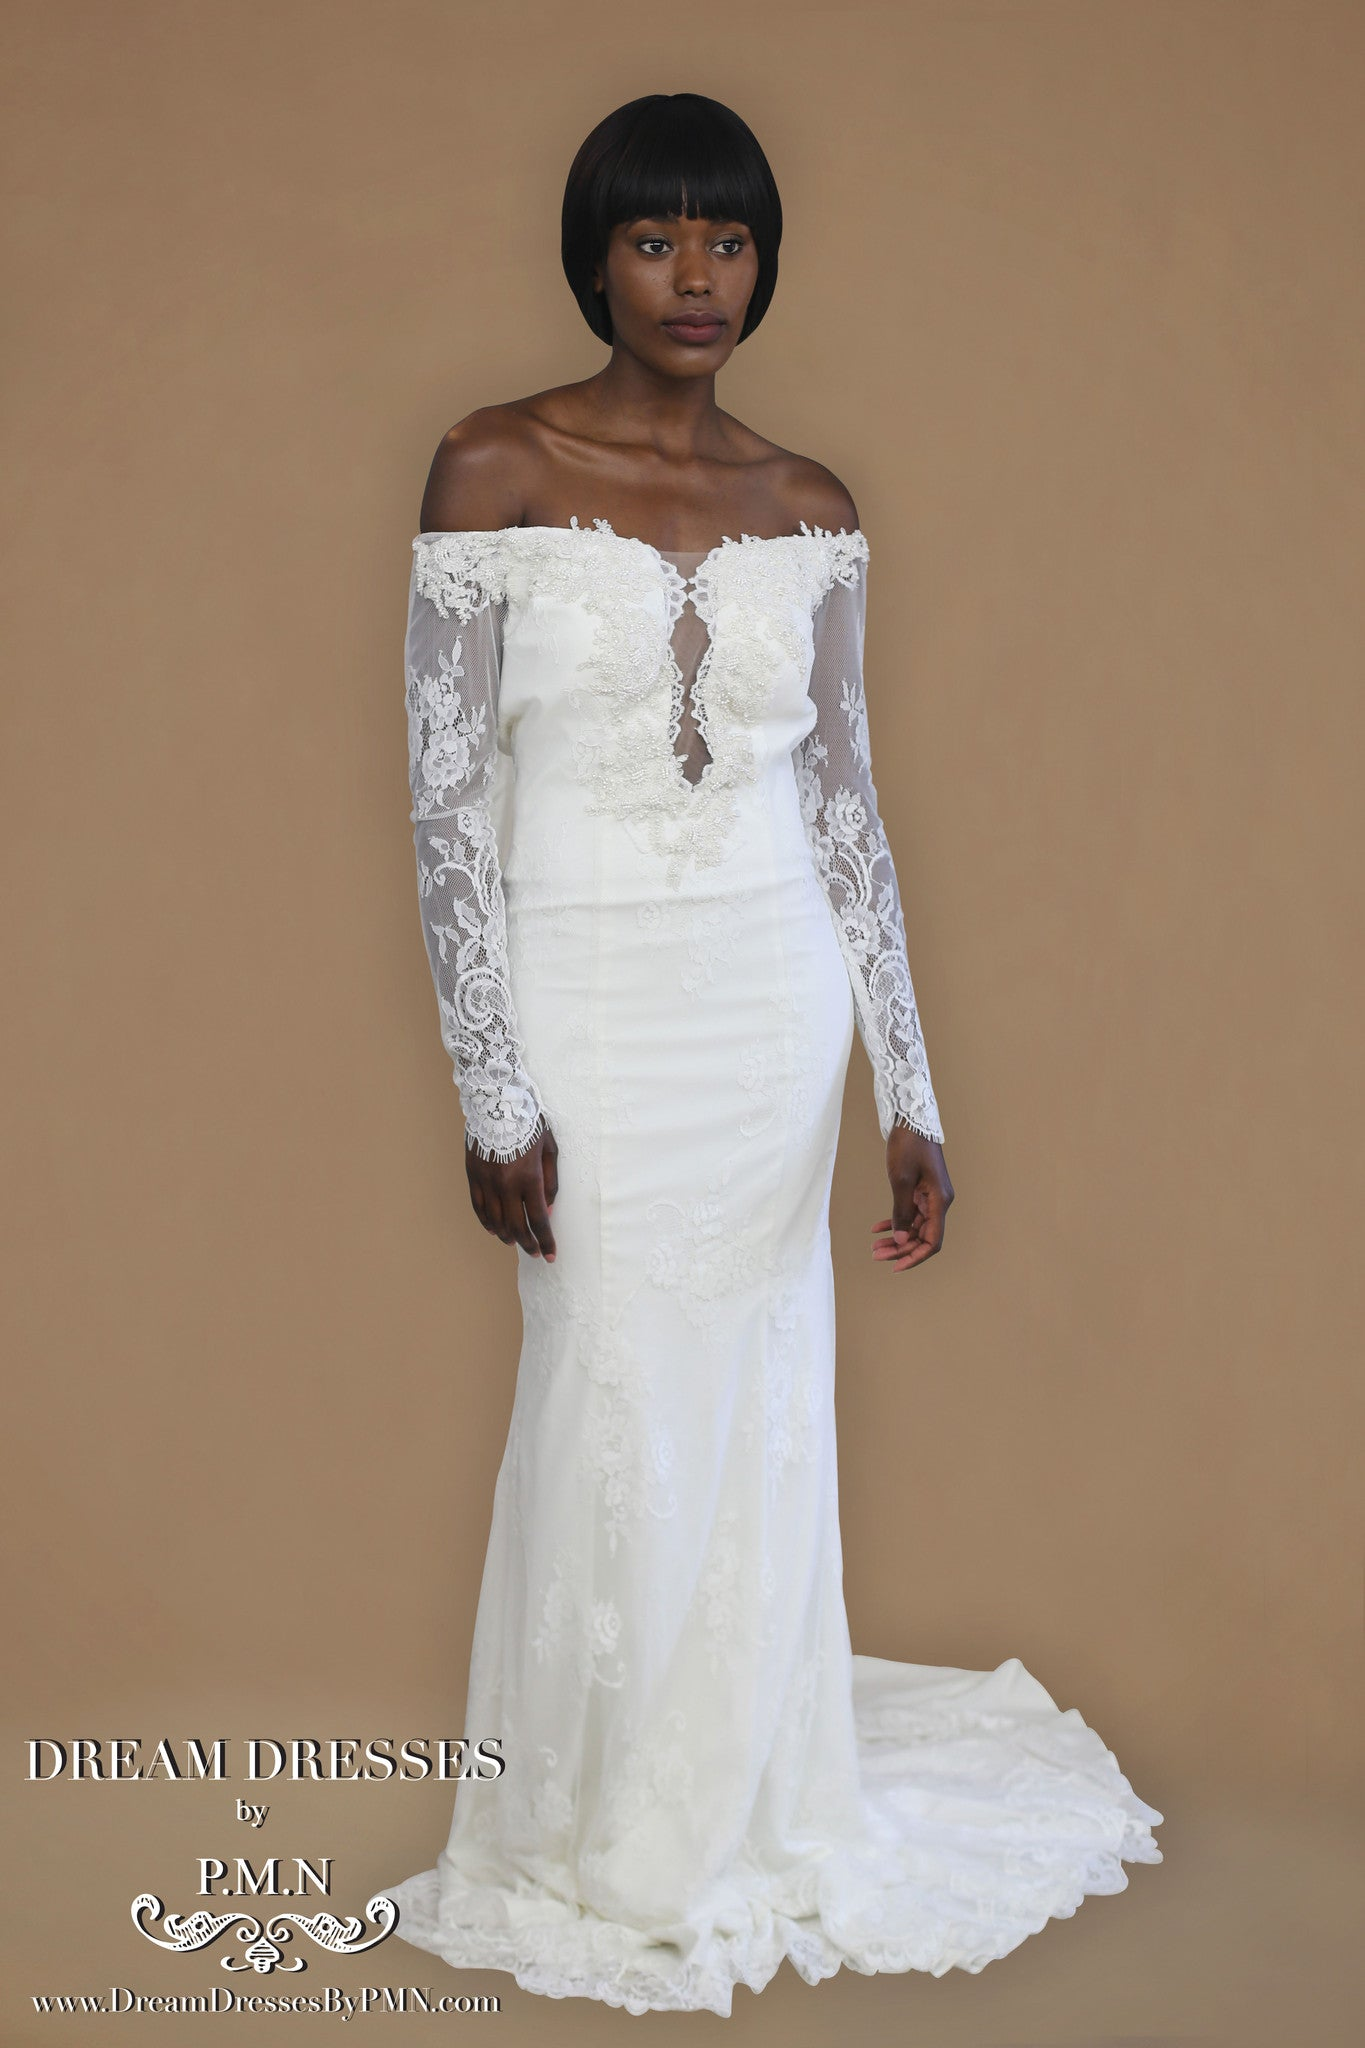 Long Sleeve All Over Lace Wedding Dress (Style #PB1934) - Dream Dresses by P.M.N  - 6